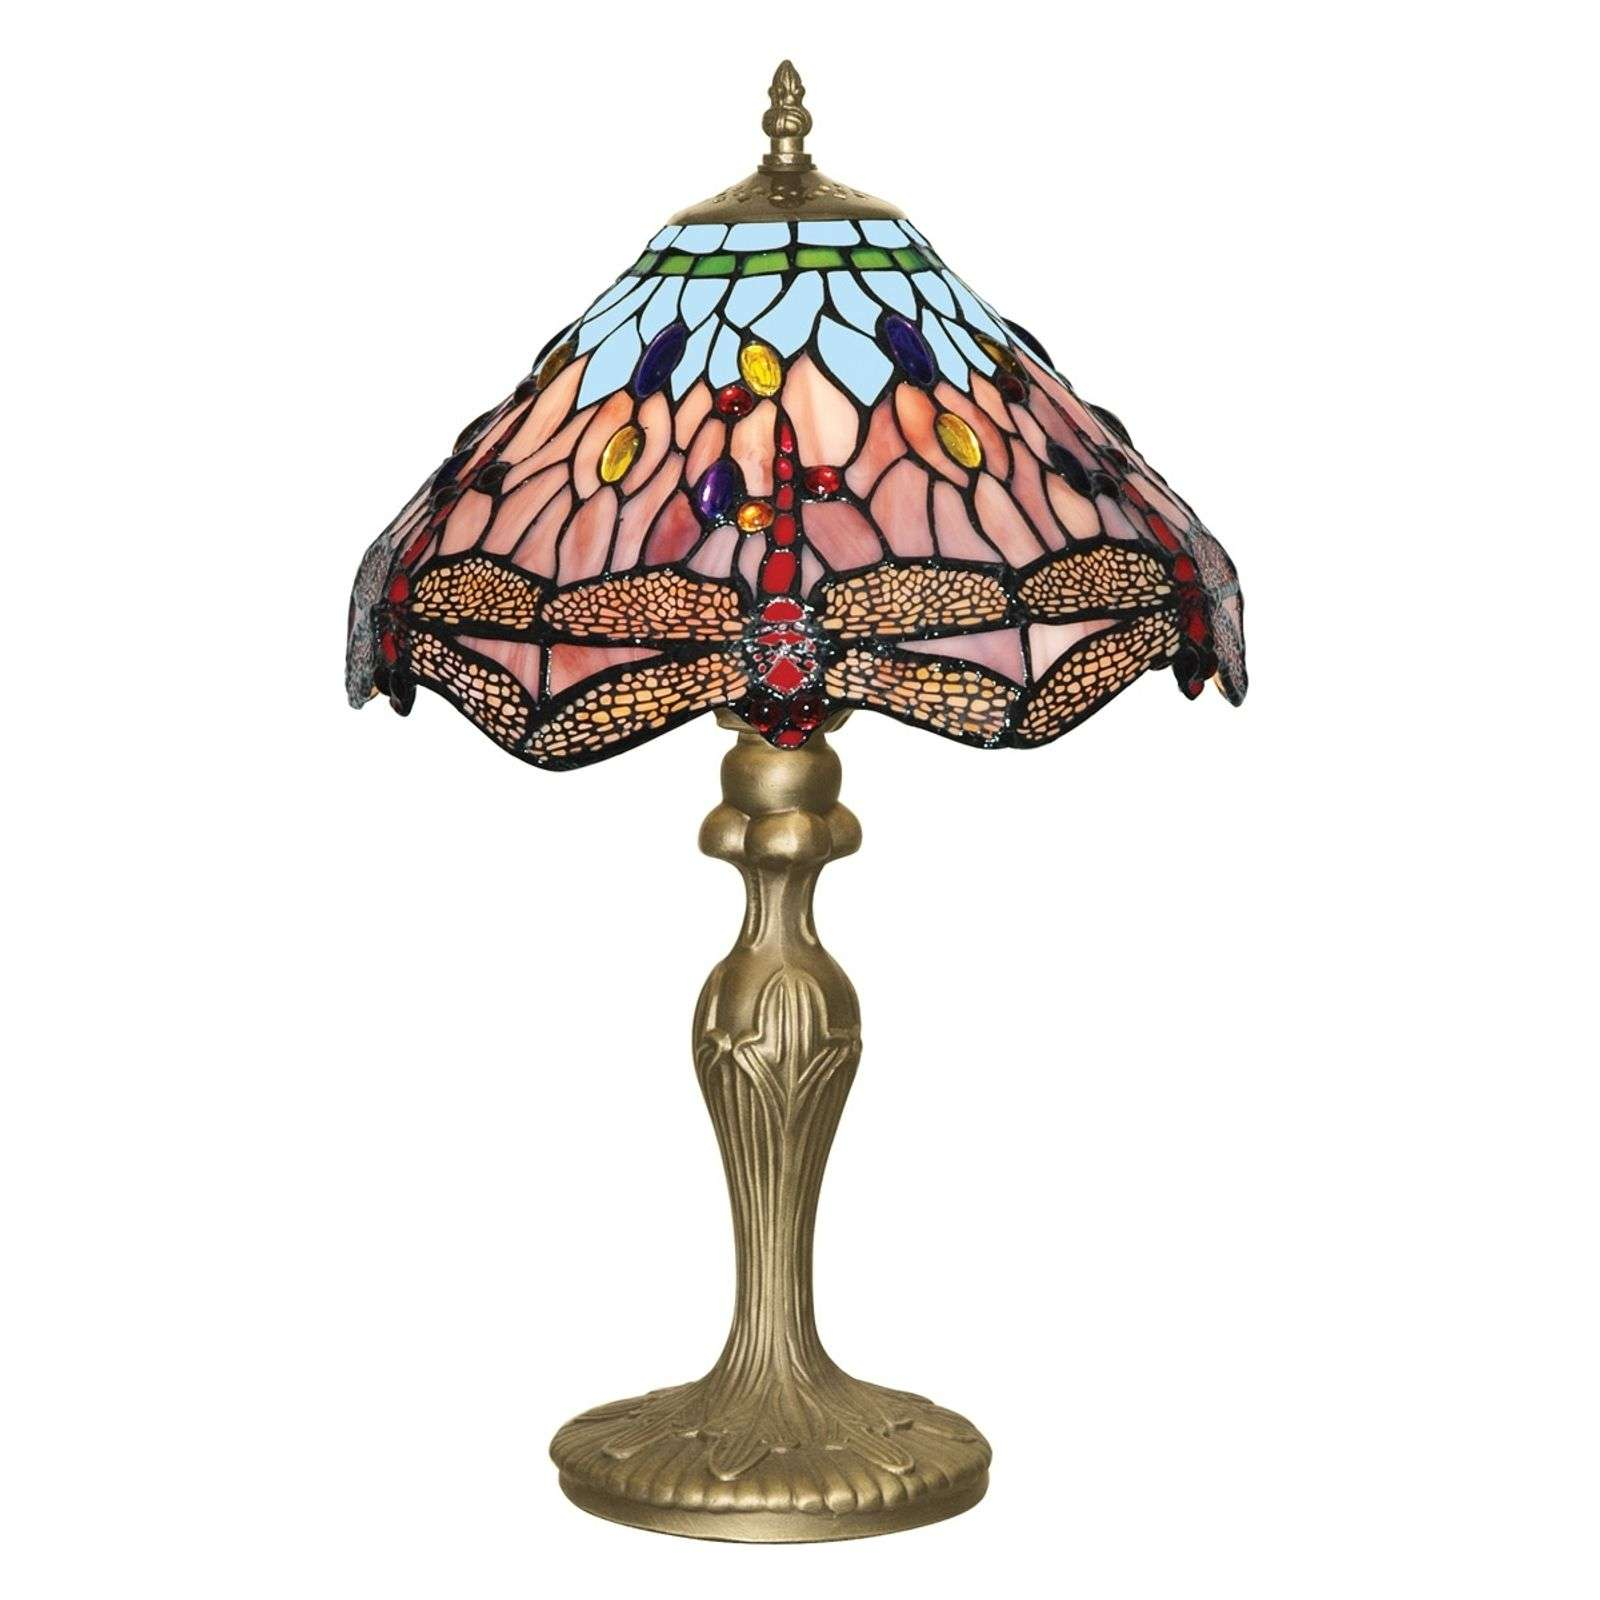 Lampe poser classique DRAGONFLY de style Tiffany